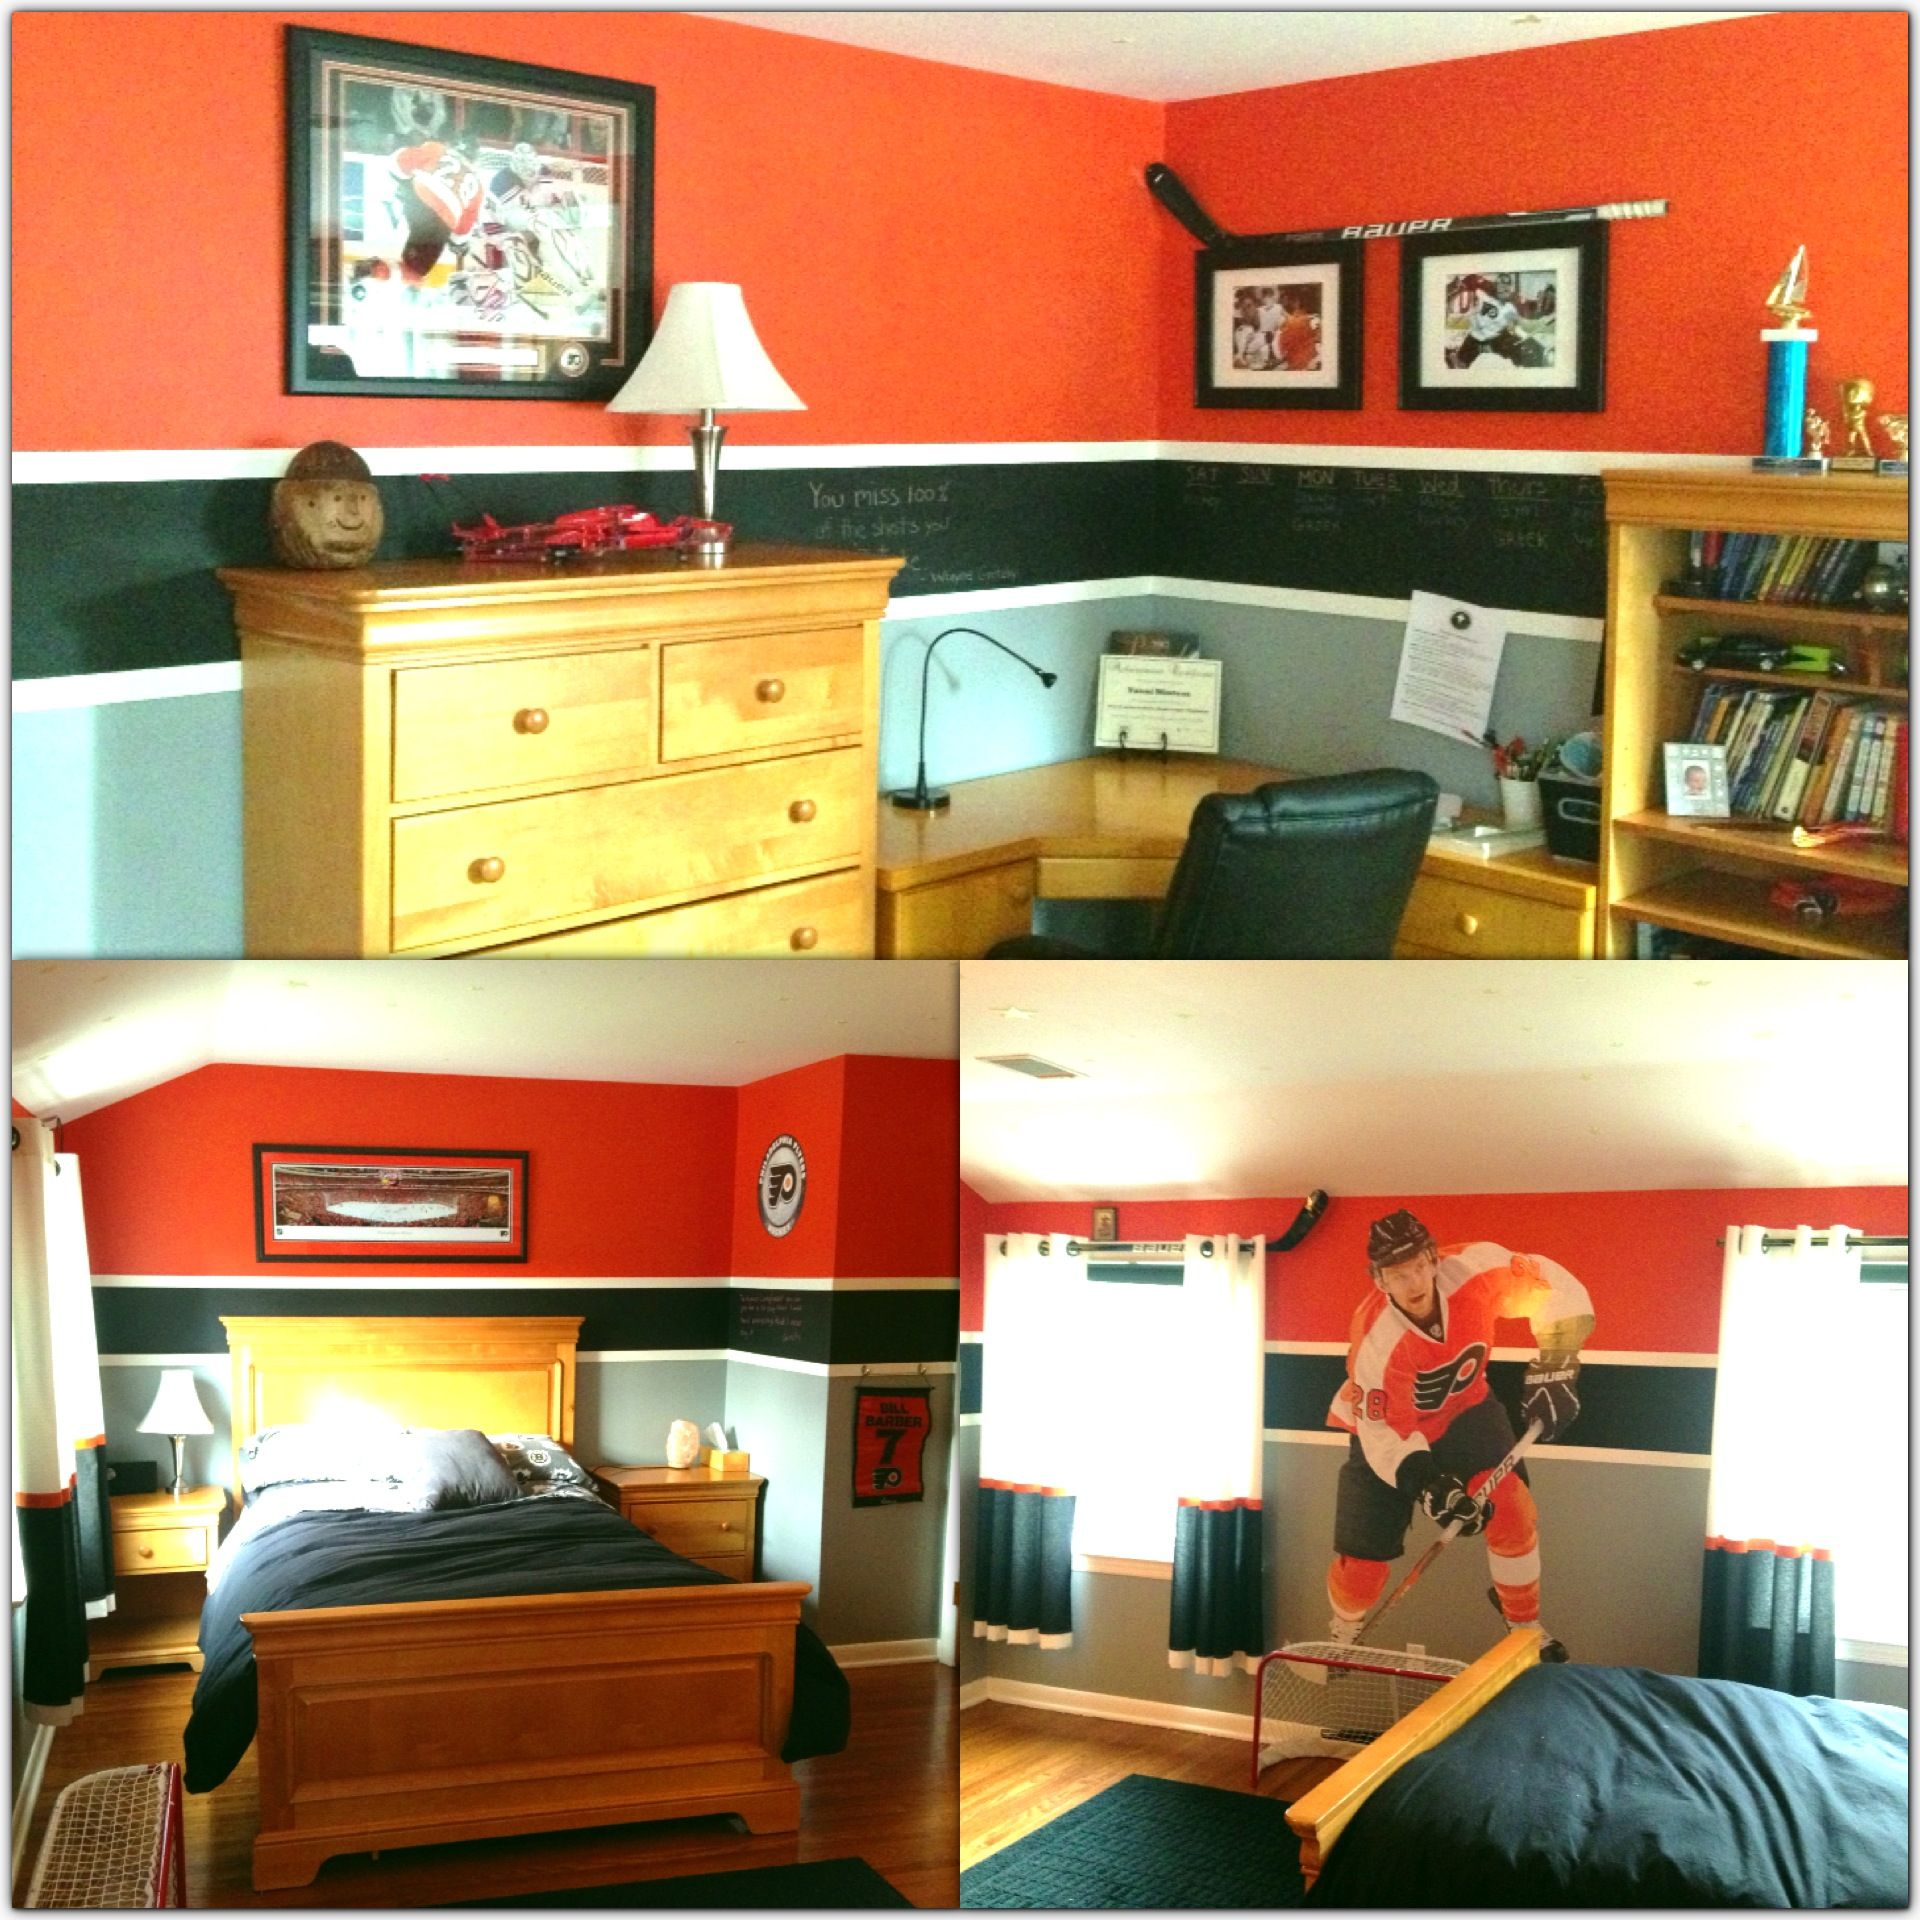 Boys hockey bedroom ideas - At My Friend S House And In Love With Her Son S Bedroom Hockey Bedroom Boys